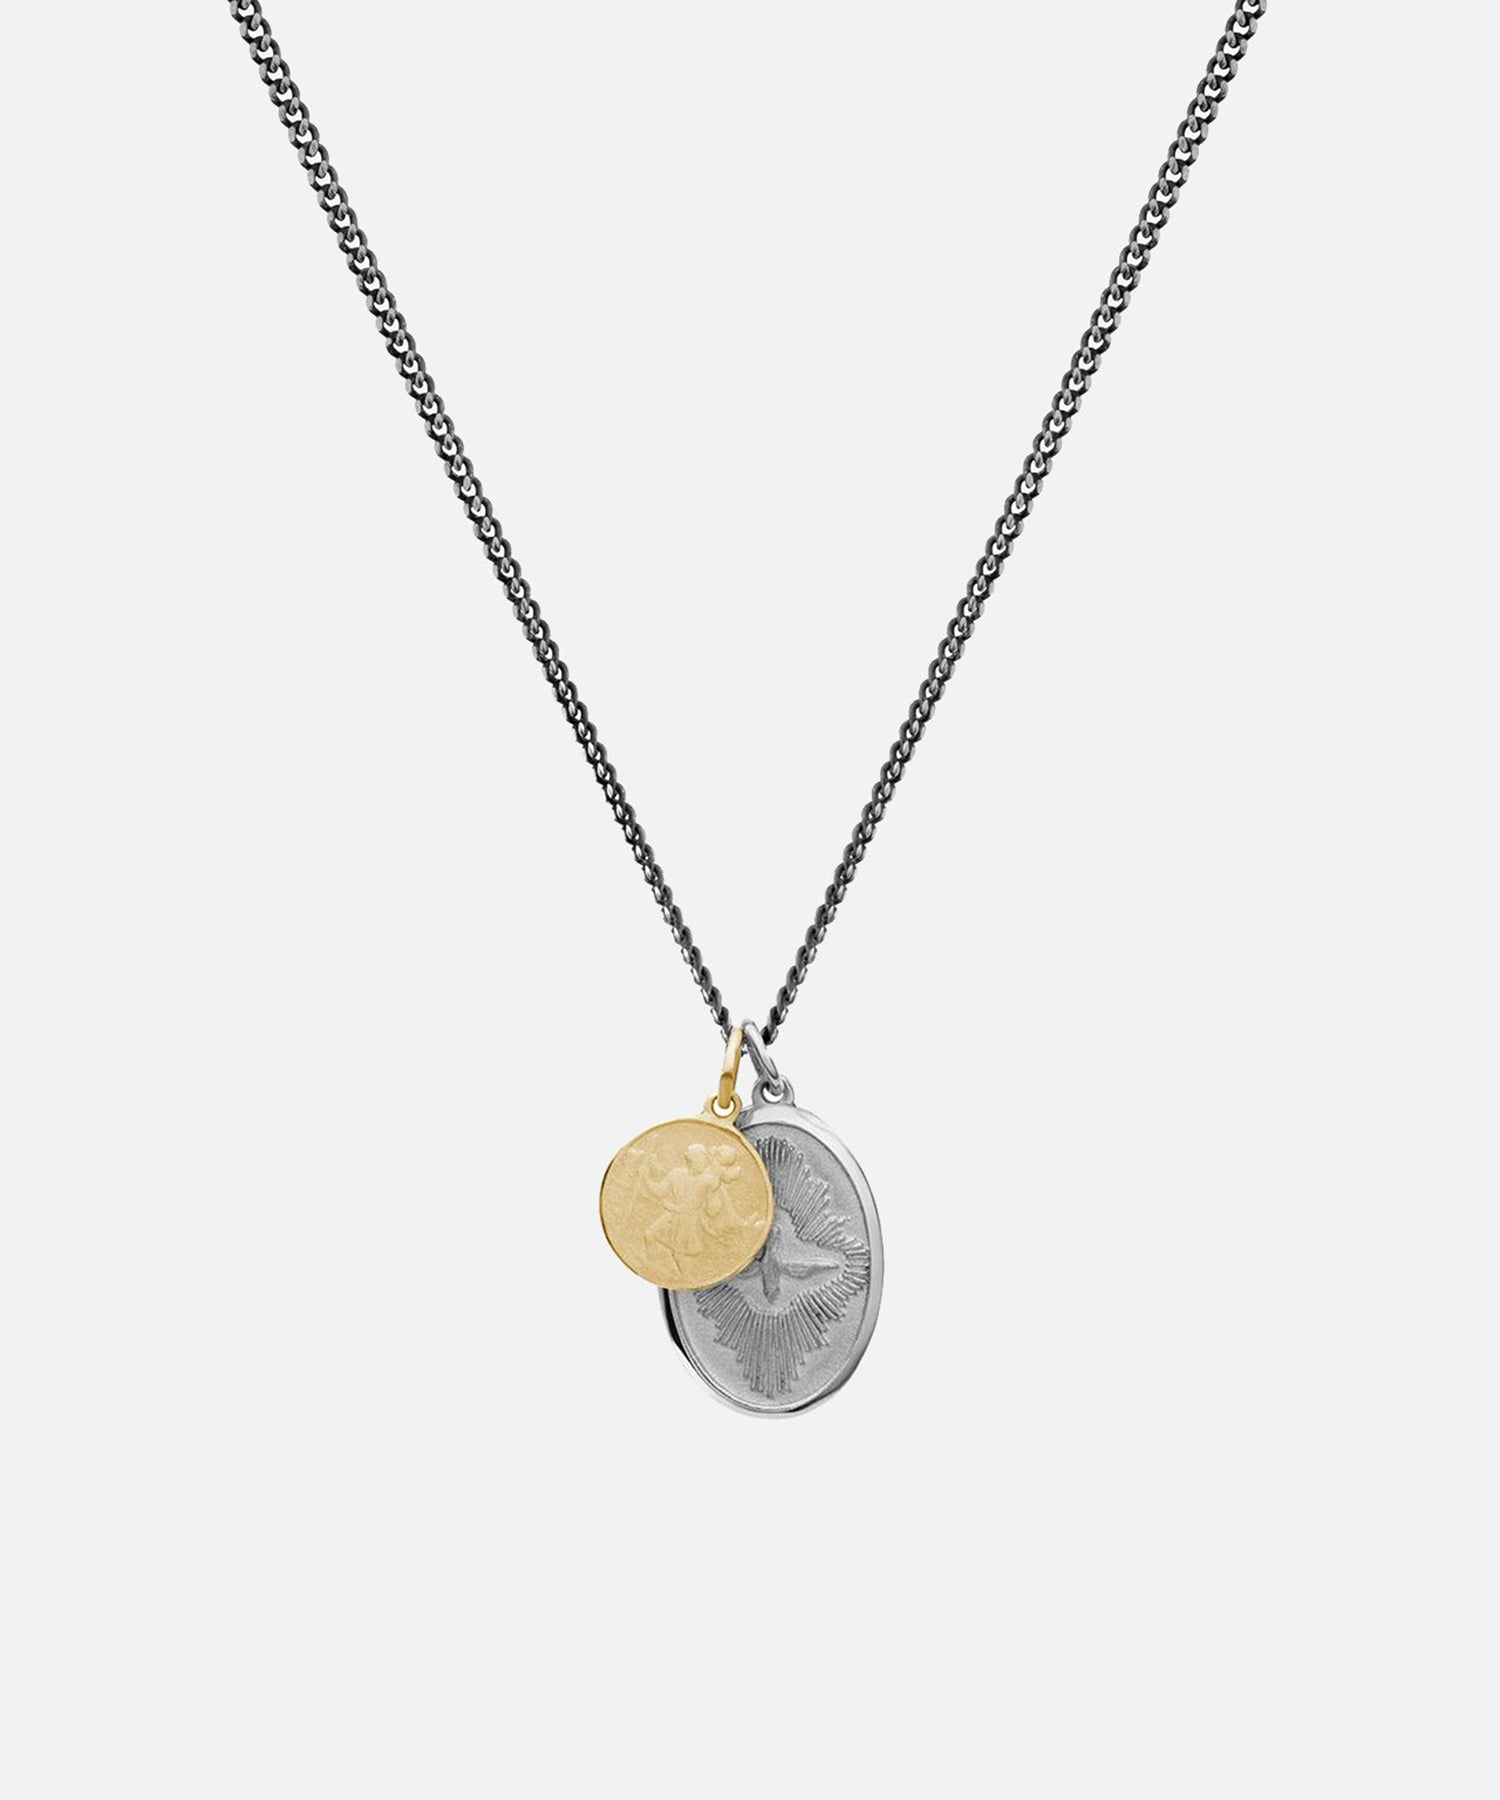 Miansai Mini Dove Pendant Necklace in Silver/Gold